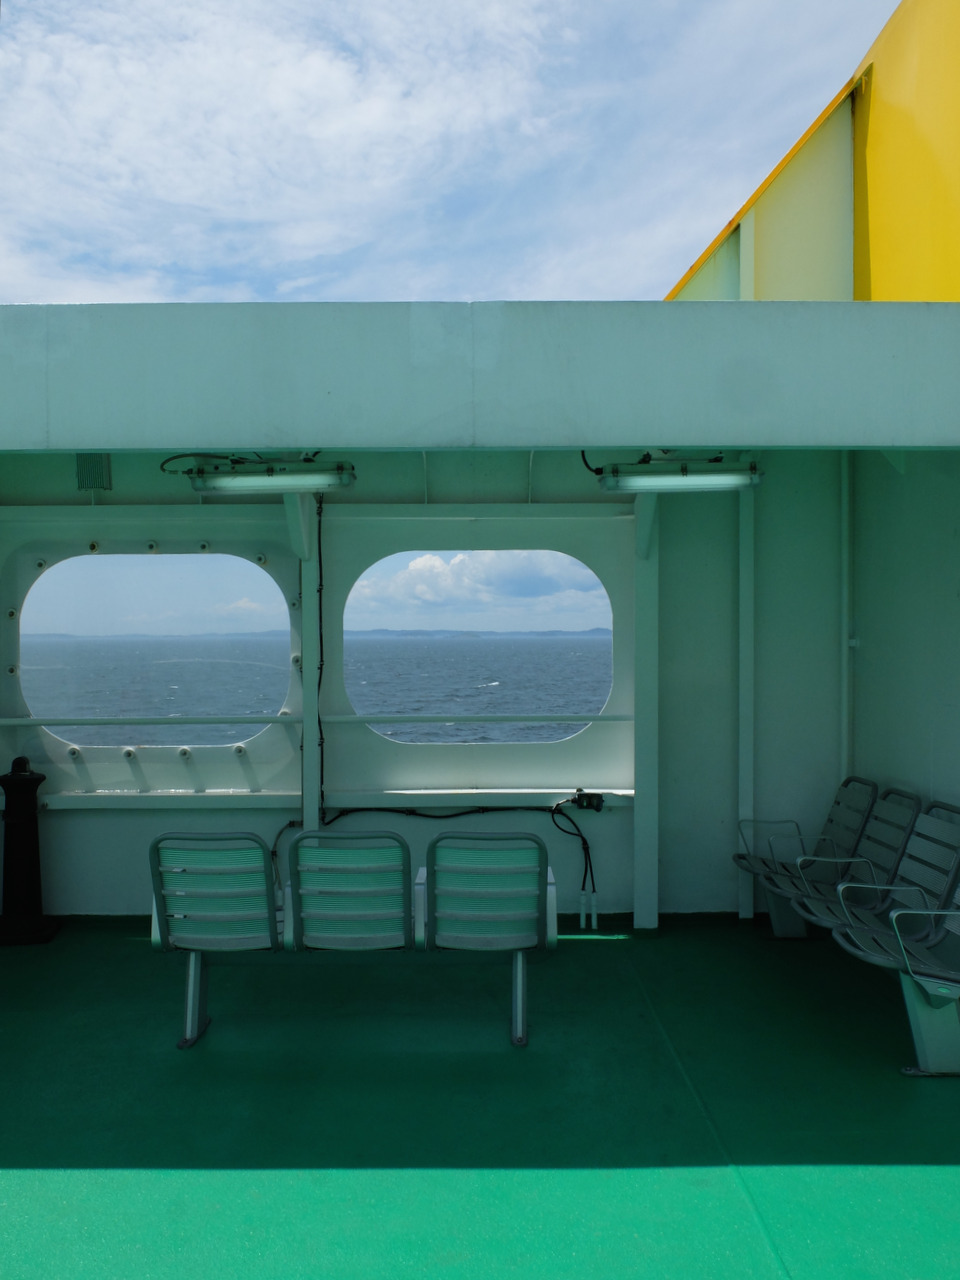 mangia minga // Travels: Grand Manan, New Brunswick. On the ferry to Grand Manan